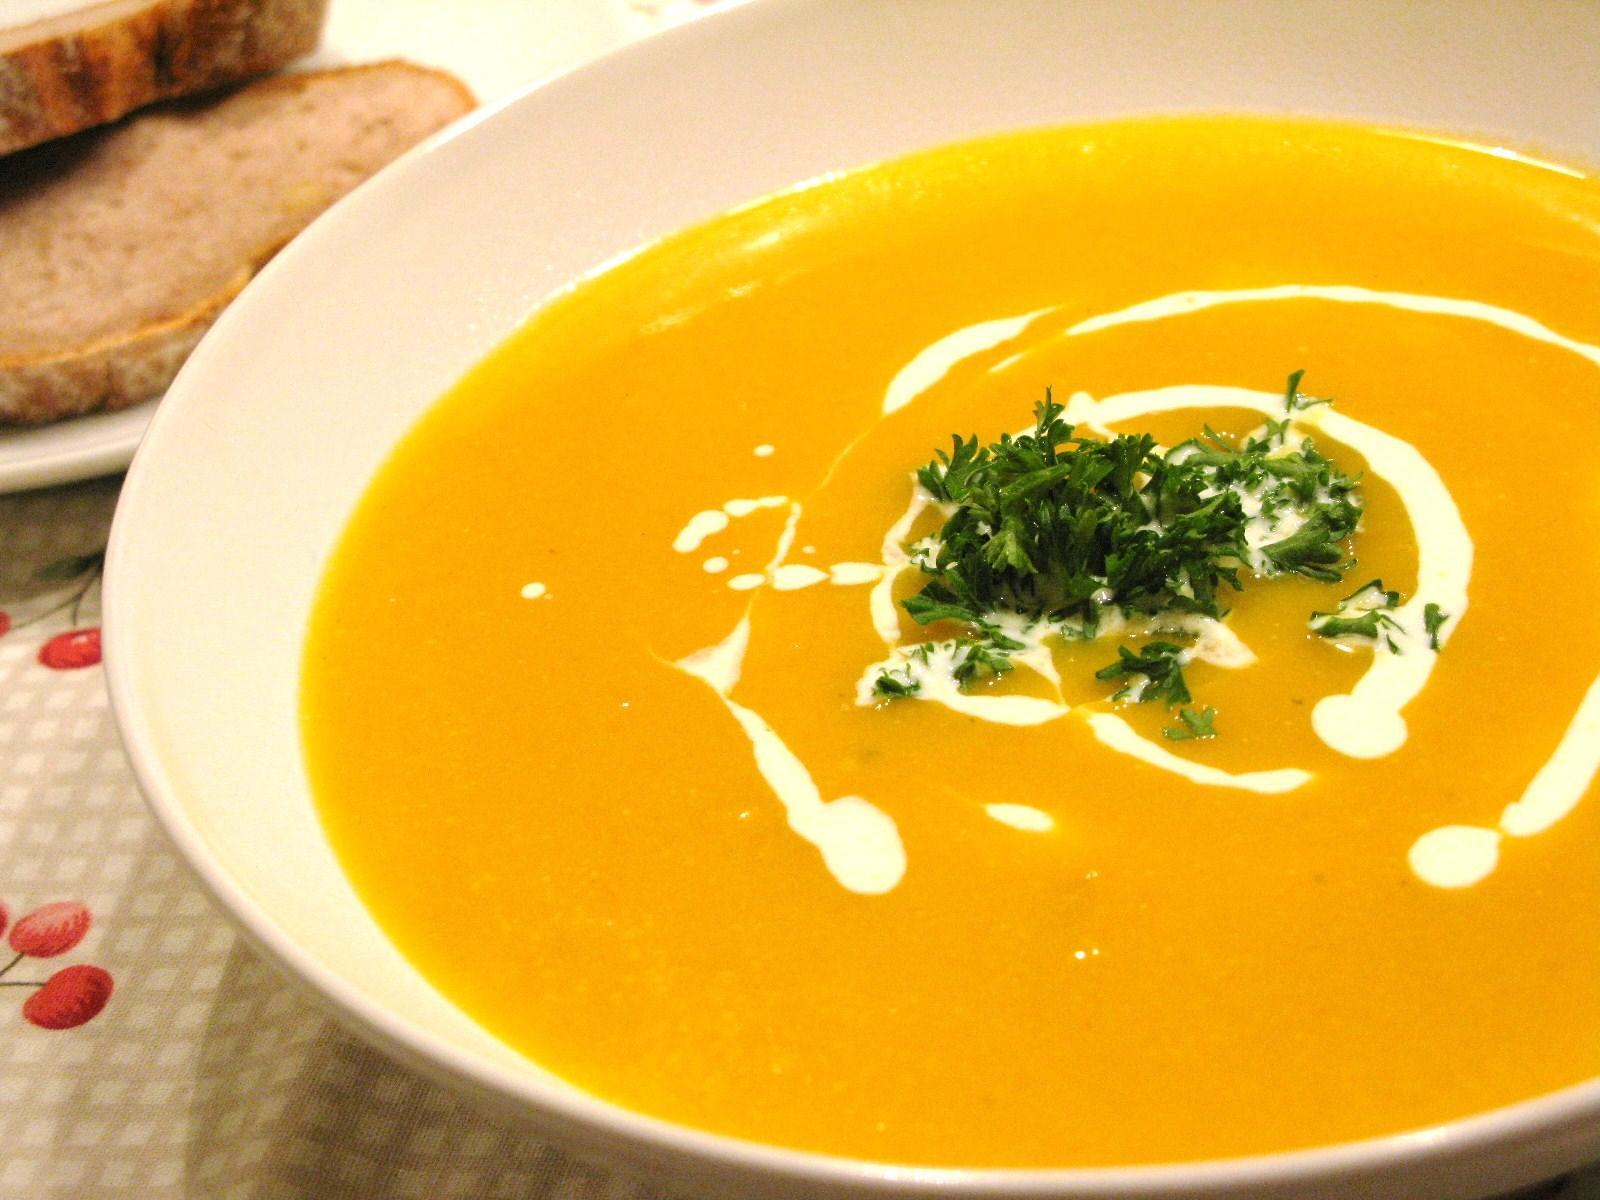 How would you eat soup at a dinner party?